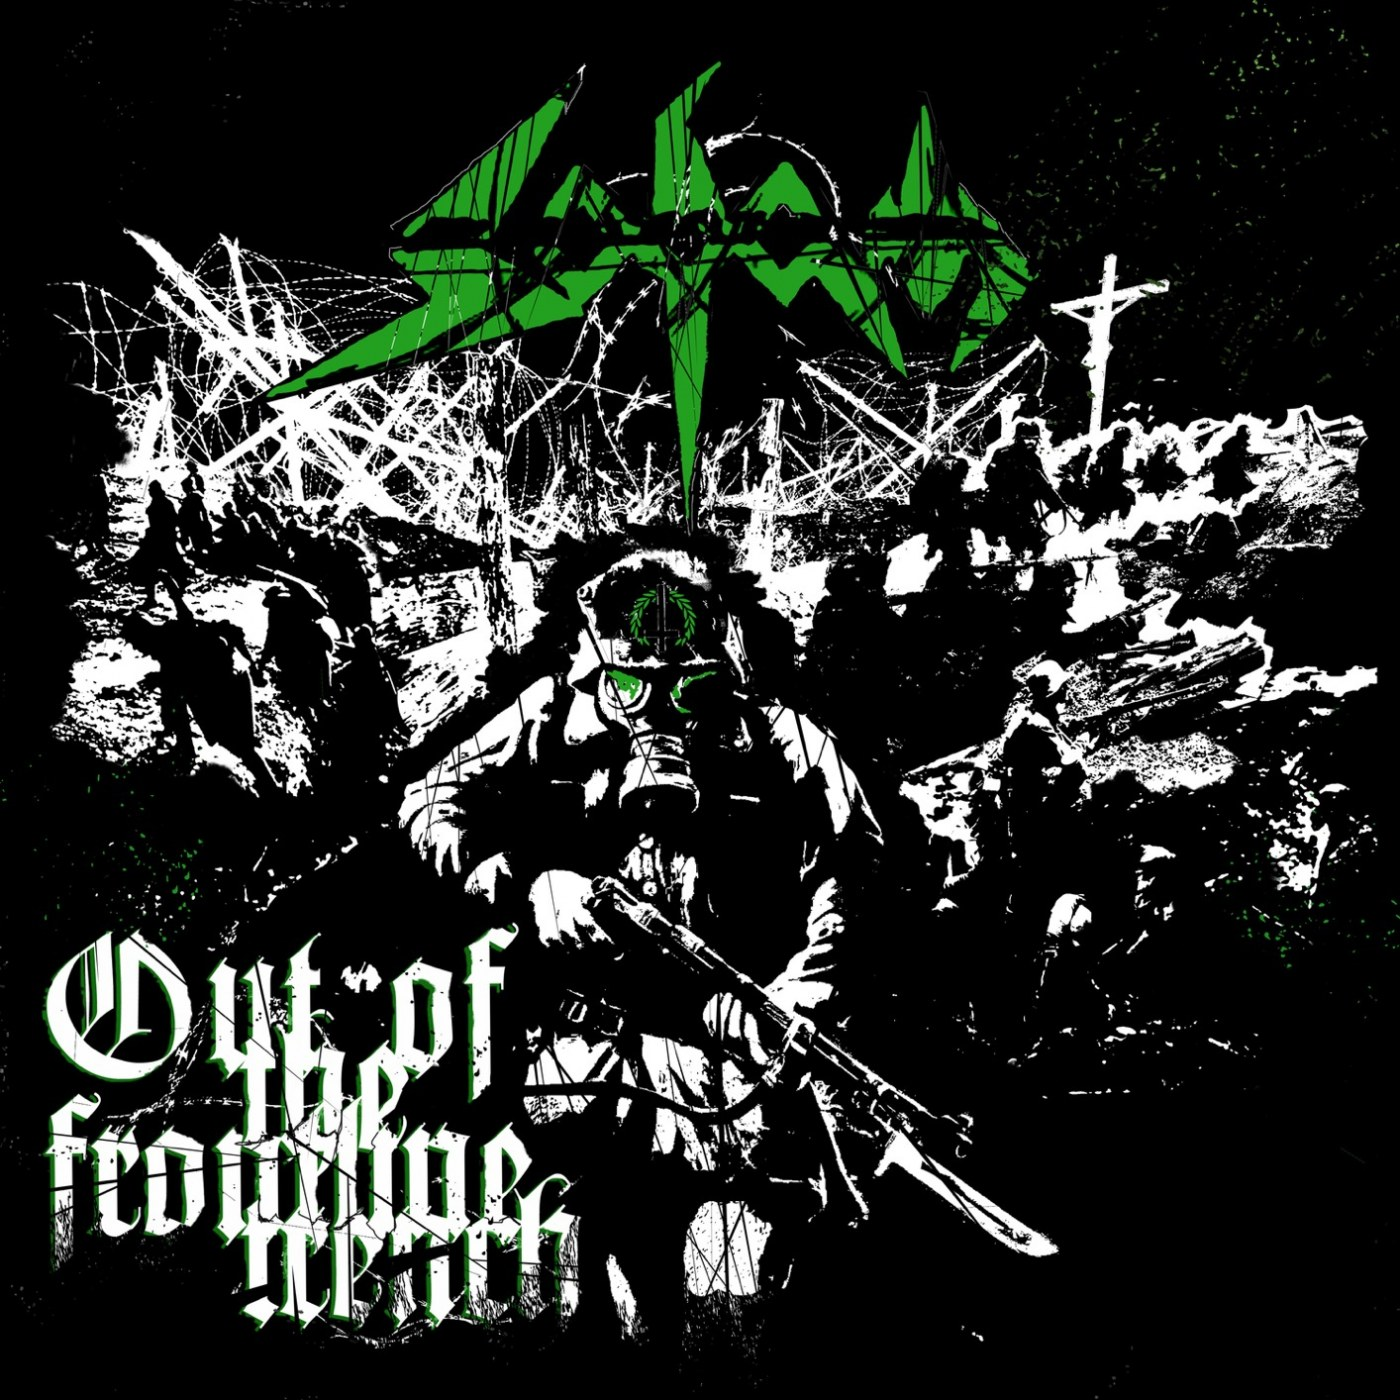 Review for Sodom - Out of the Frontline Trench